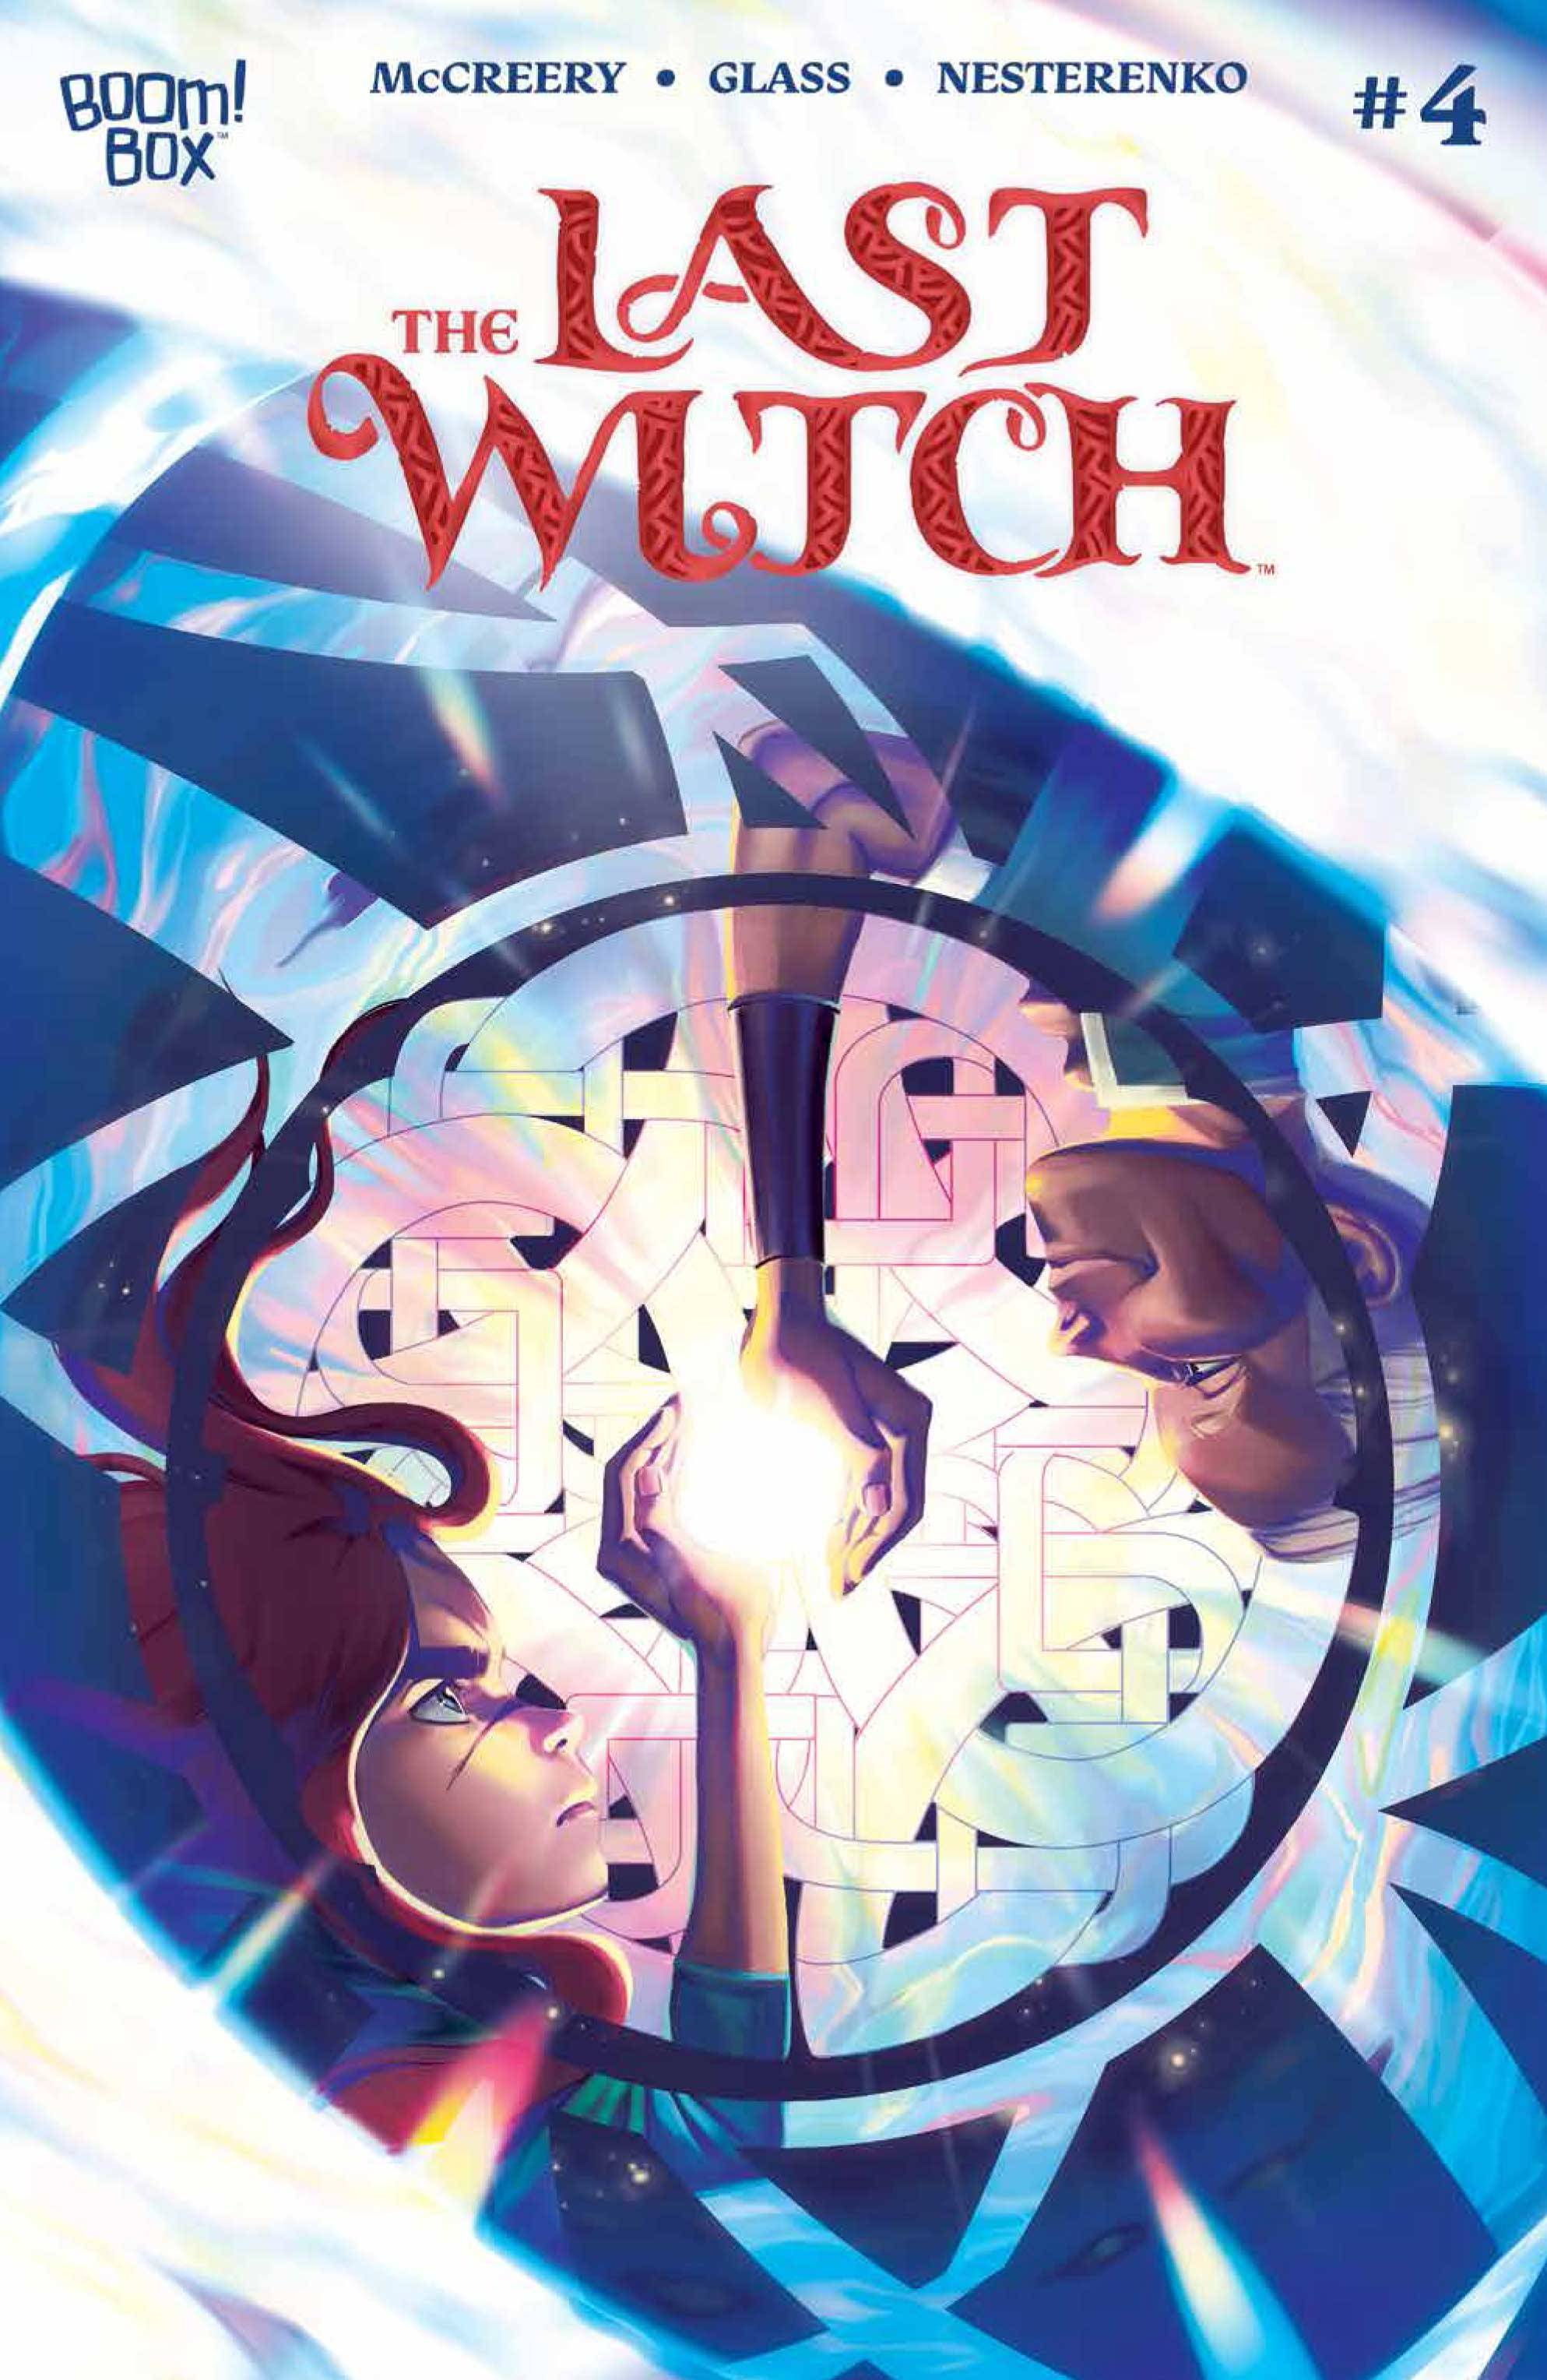 LAST WITCH #4 CVR A GLASS